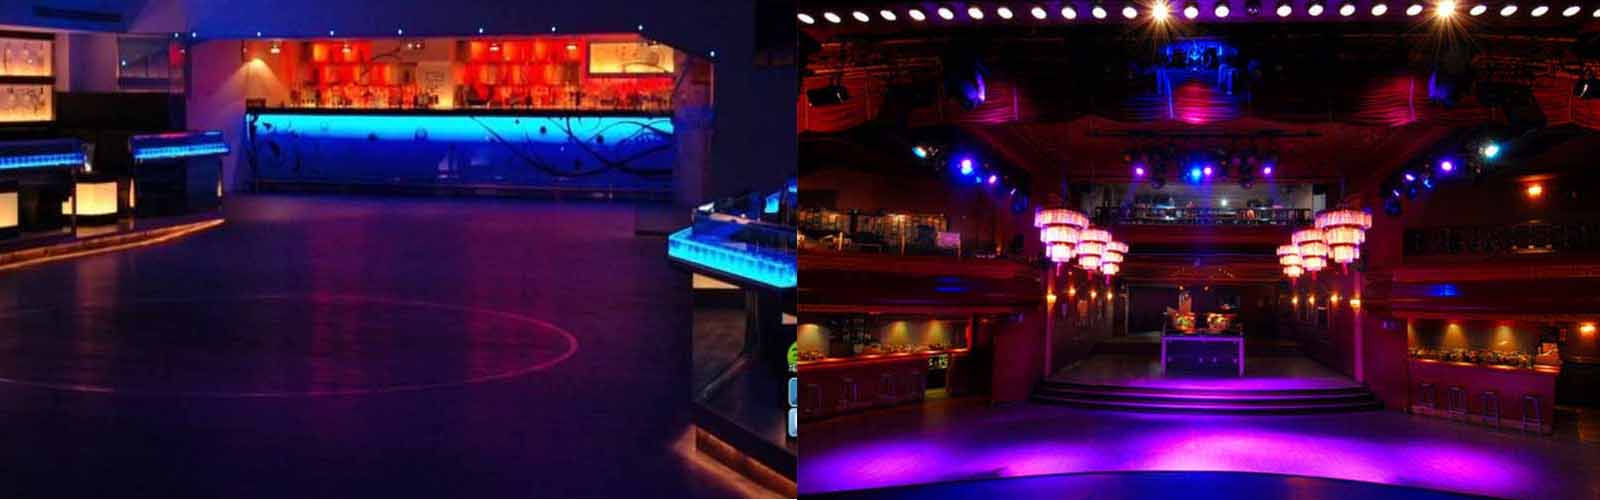 Experience a special night out at Nightclub Luz de Gas